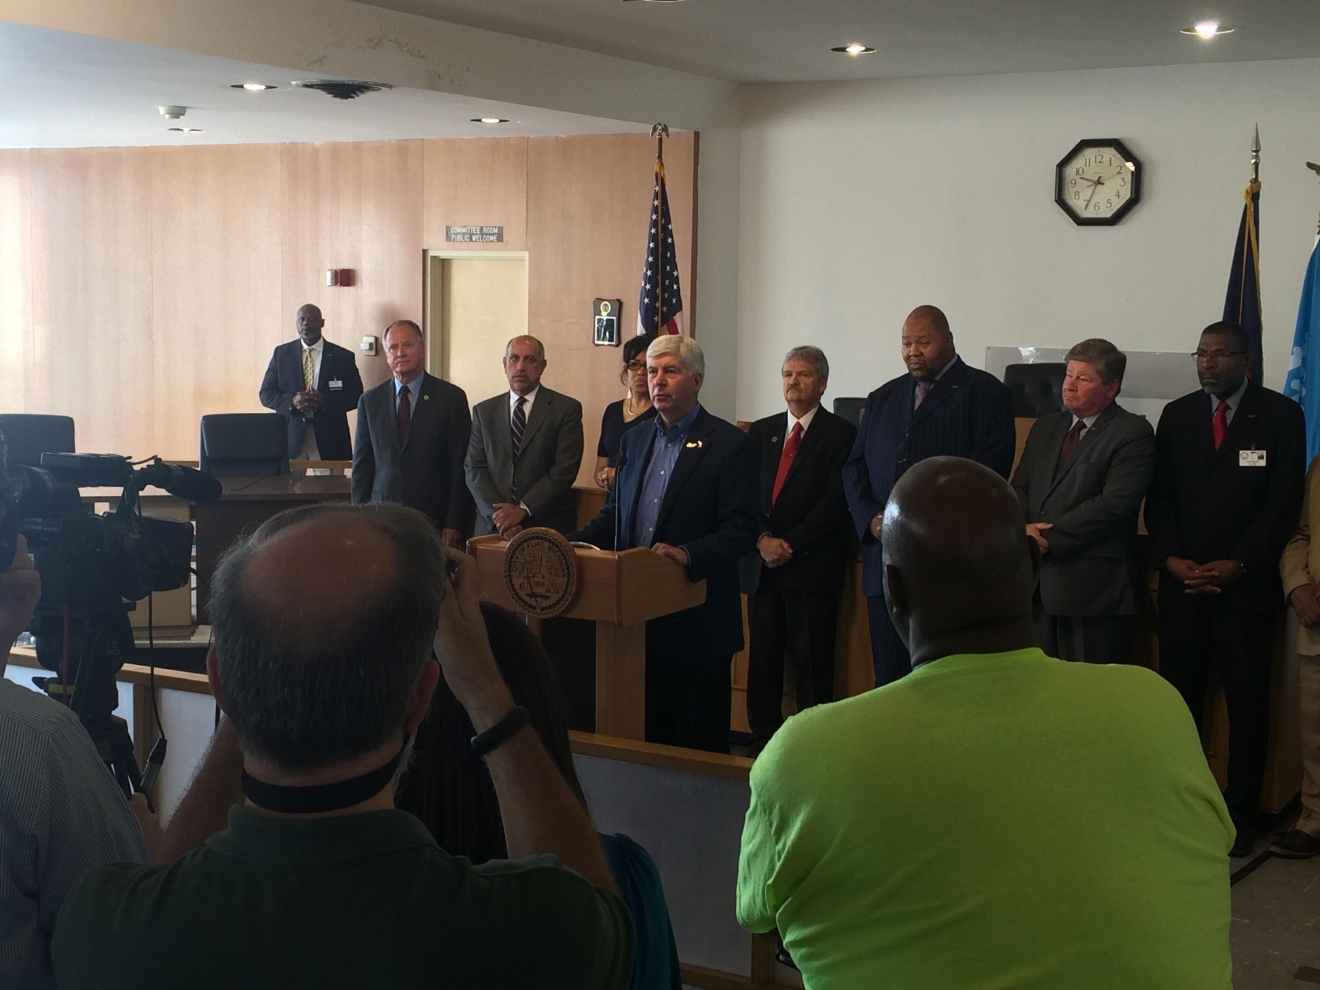 The Flint City Council is also supporting this move. (Mike Horne - NBC25/FOX66 News)